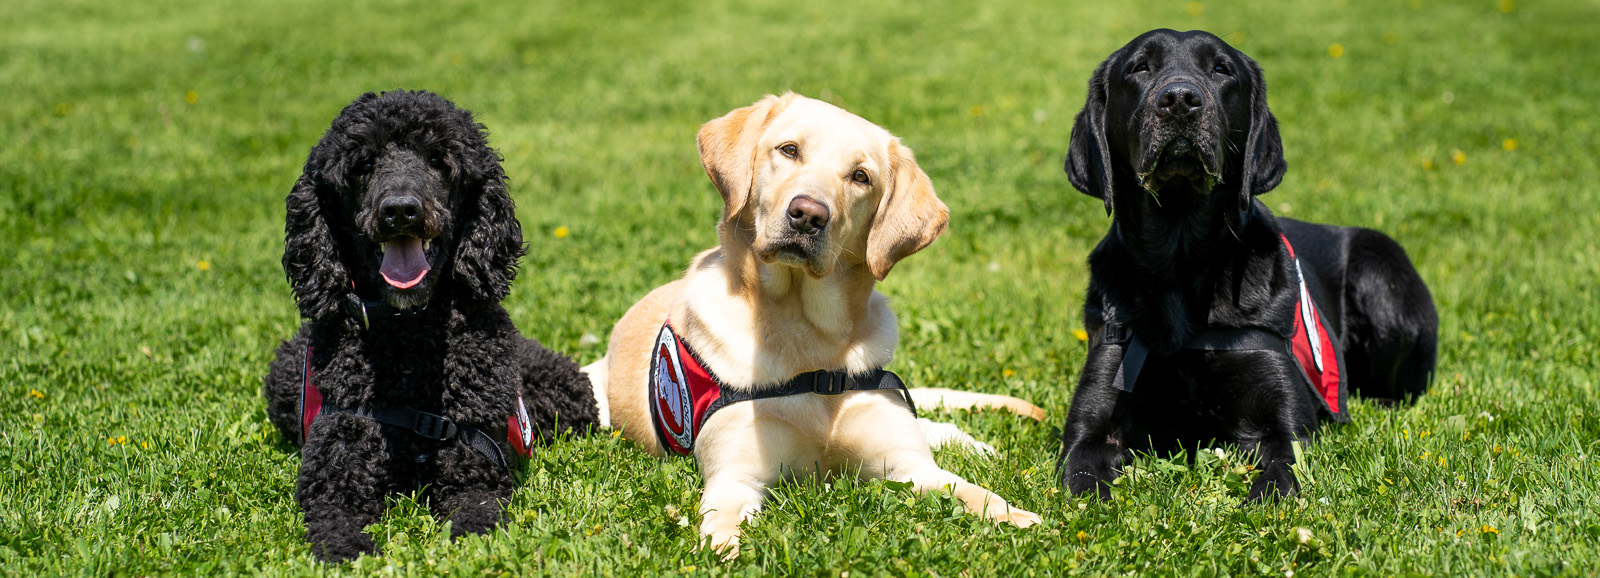 three dogs wearing service capes lying on the grass